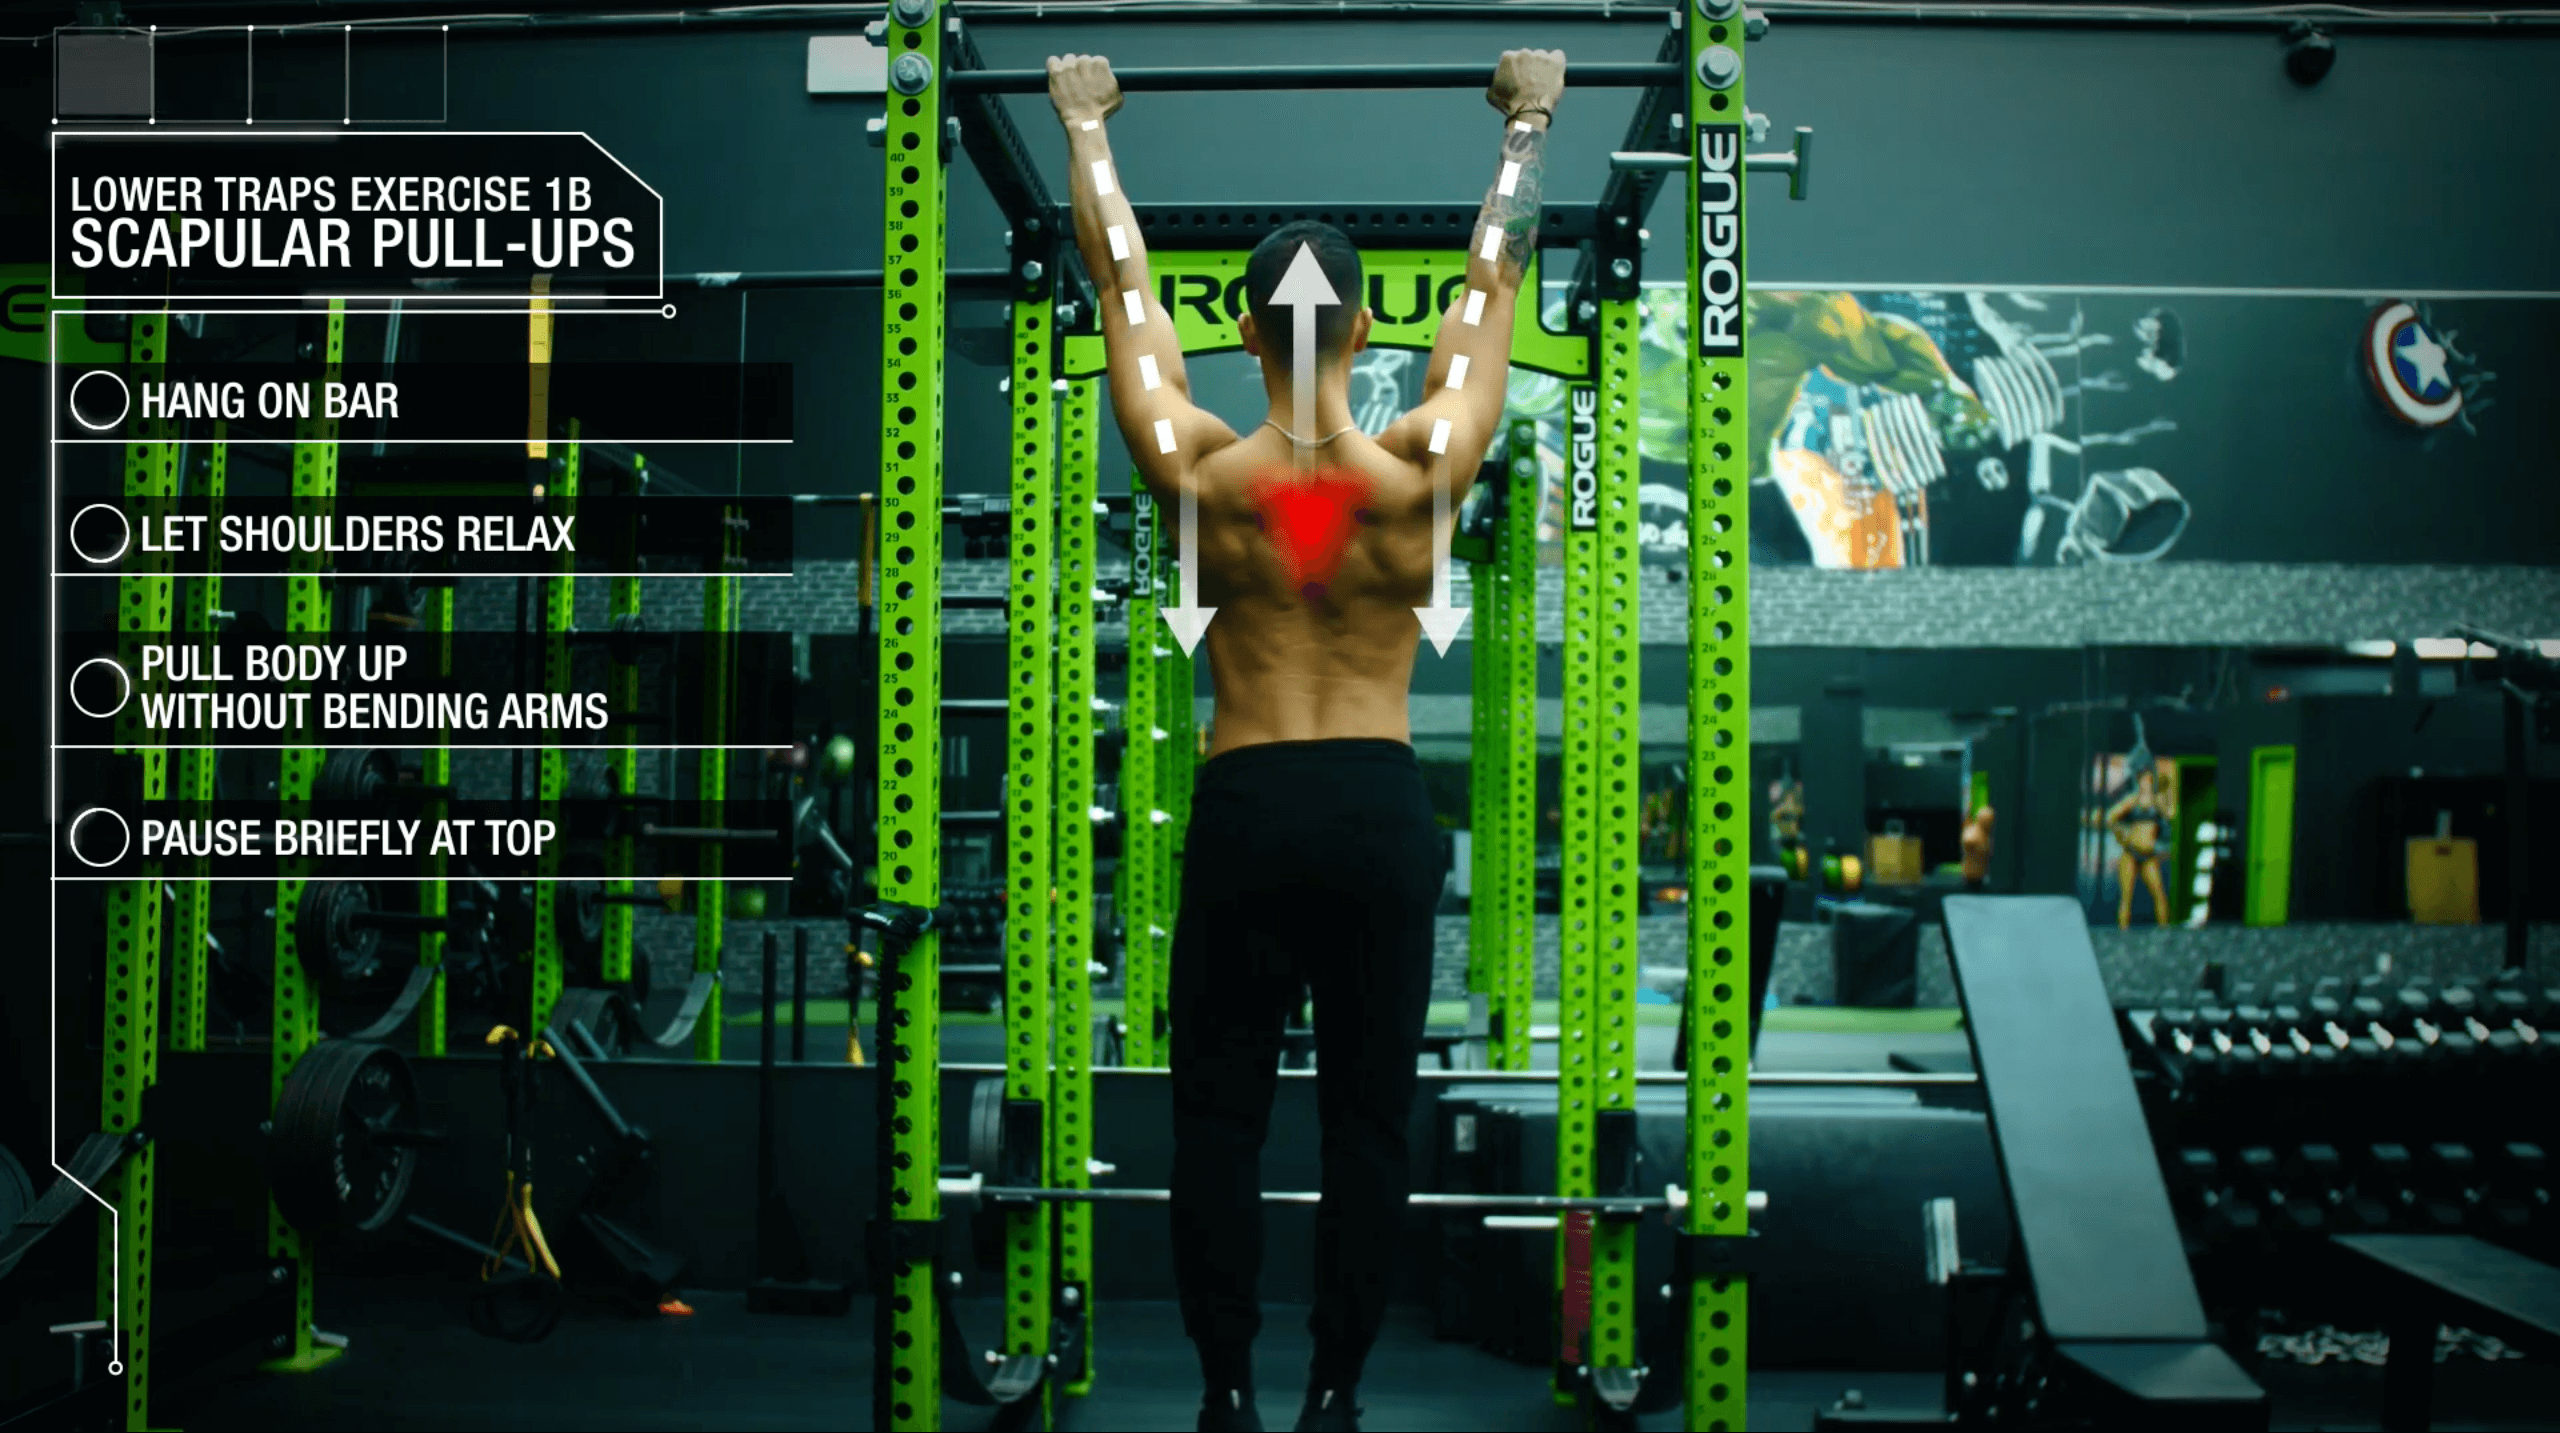 How to correct muscle imbalance lower traps scapular pull ups 2